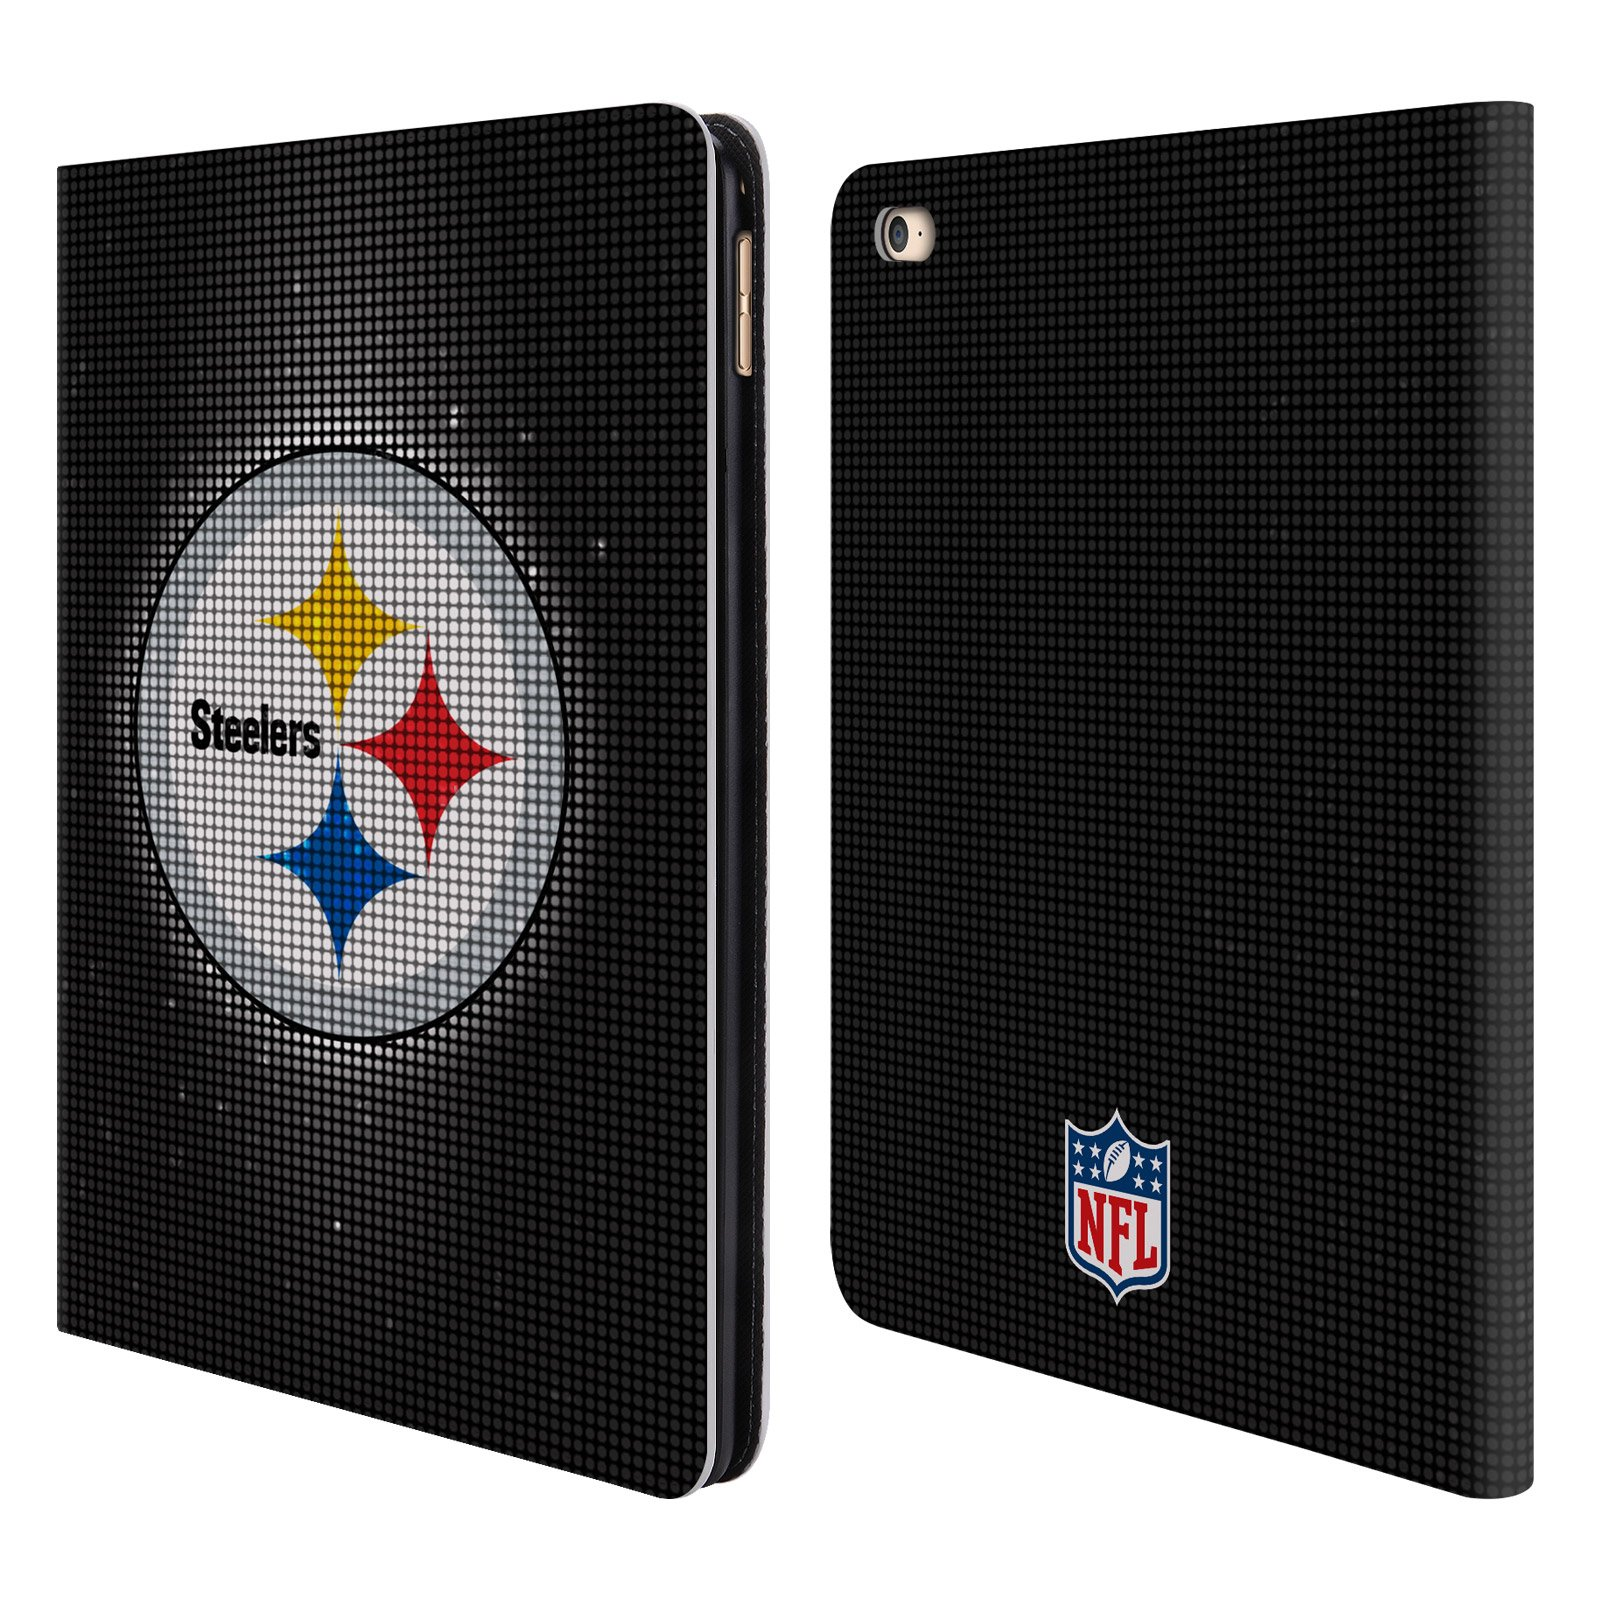 Official NFL LED 2017/18 Pittsburgh Steelers Leather Book Wallet Case Cover for iPad Air 2 (2014)